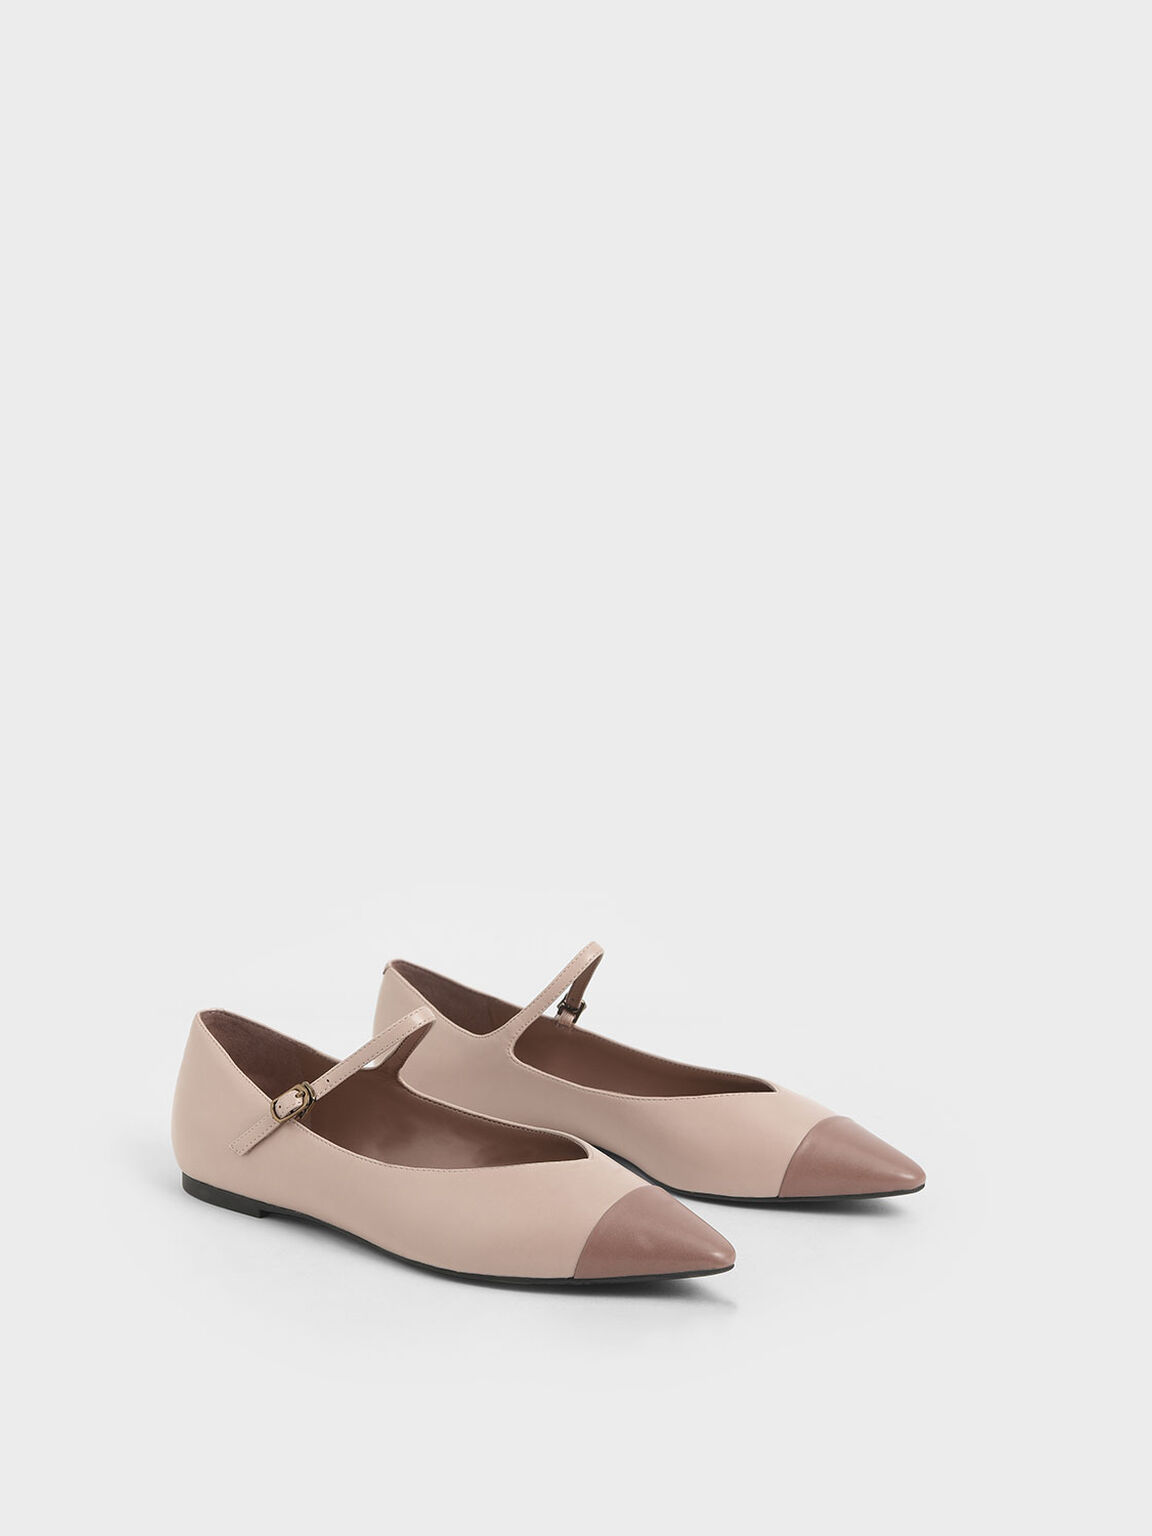 Two-Tone Pointed Toe Mary Jane Flats, Nude, hi-res